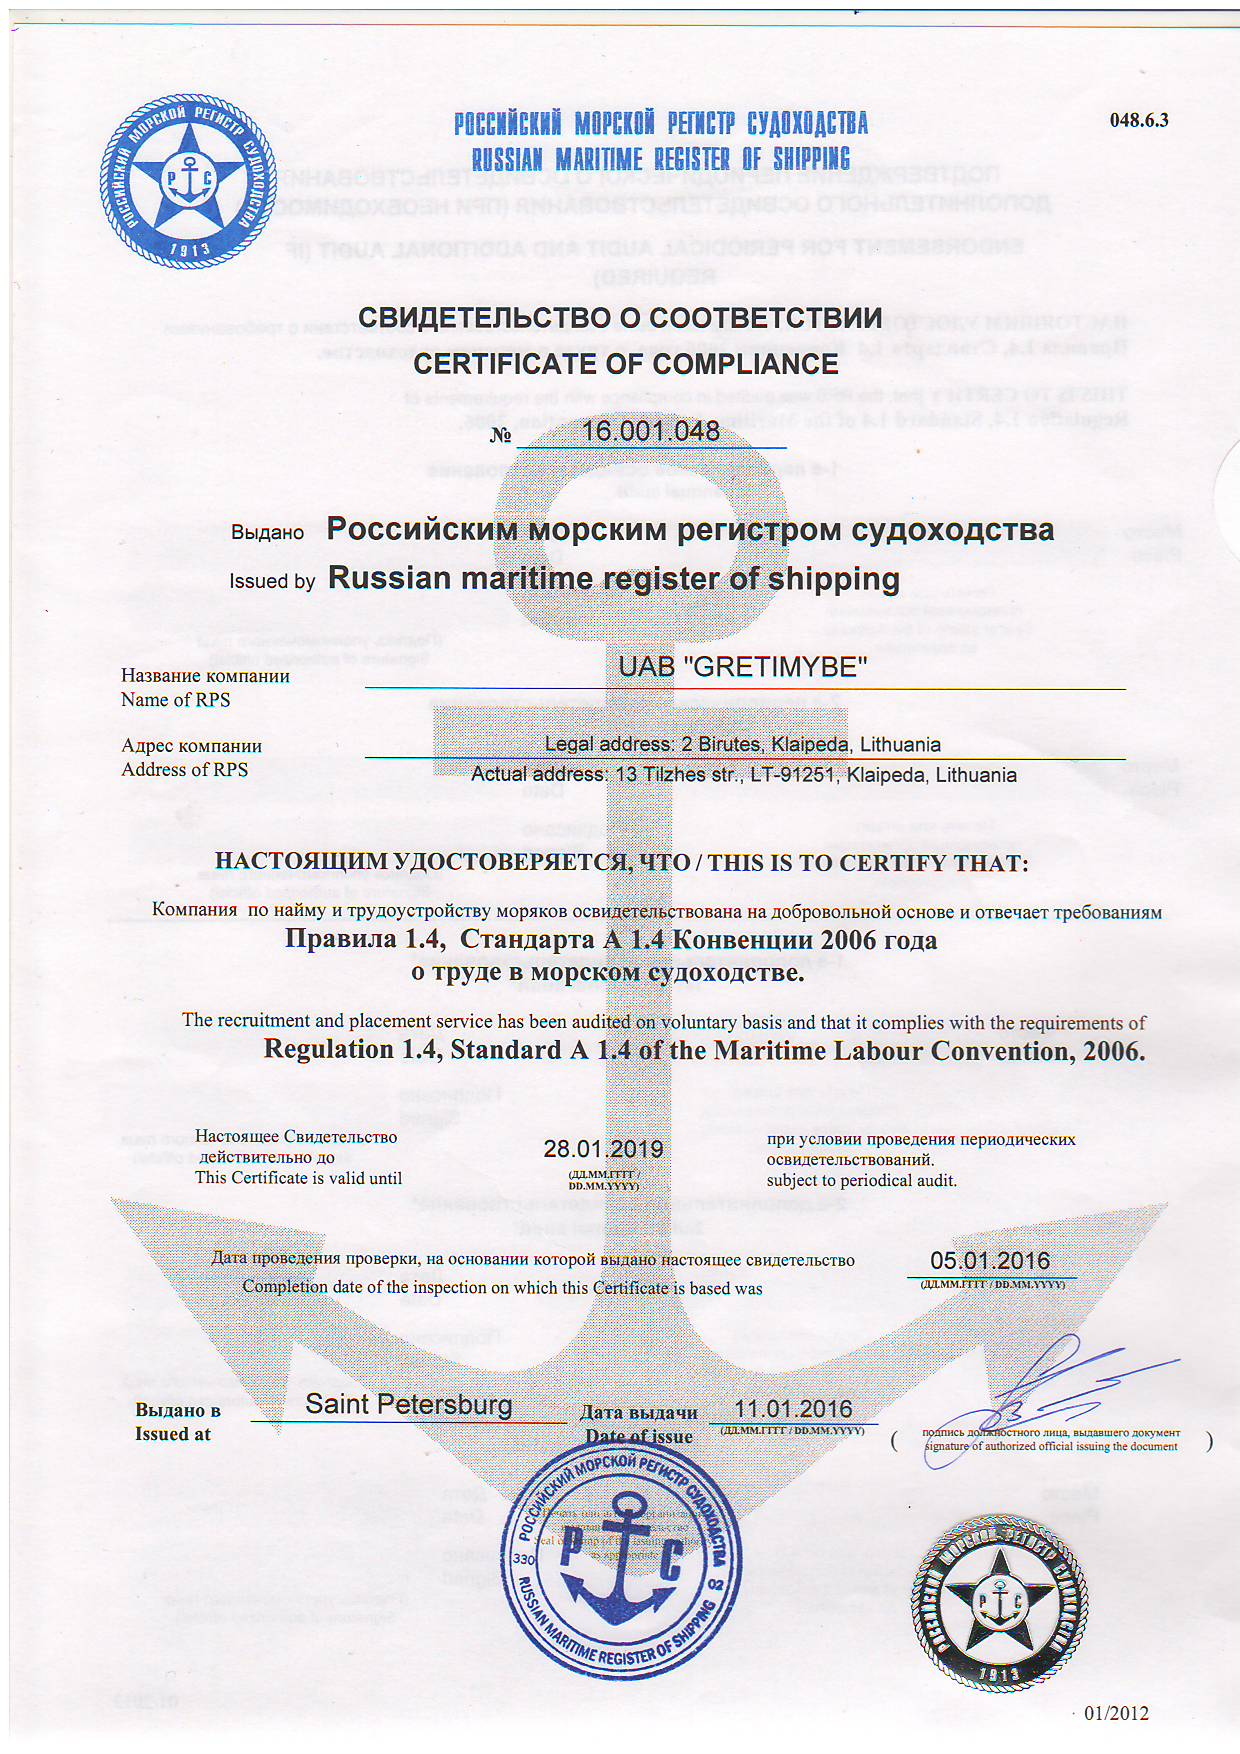 CERT OF COMPLIANCE